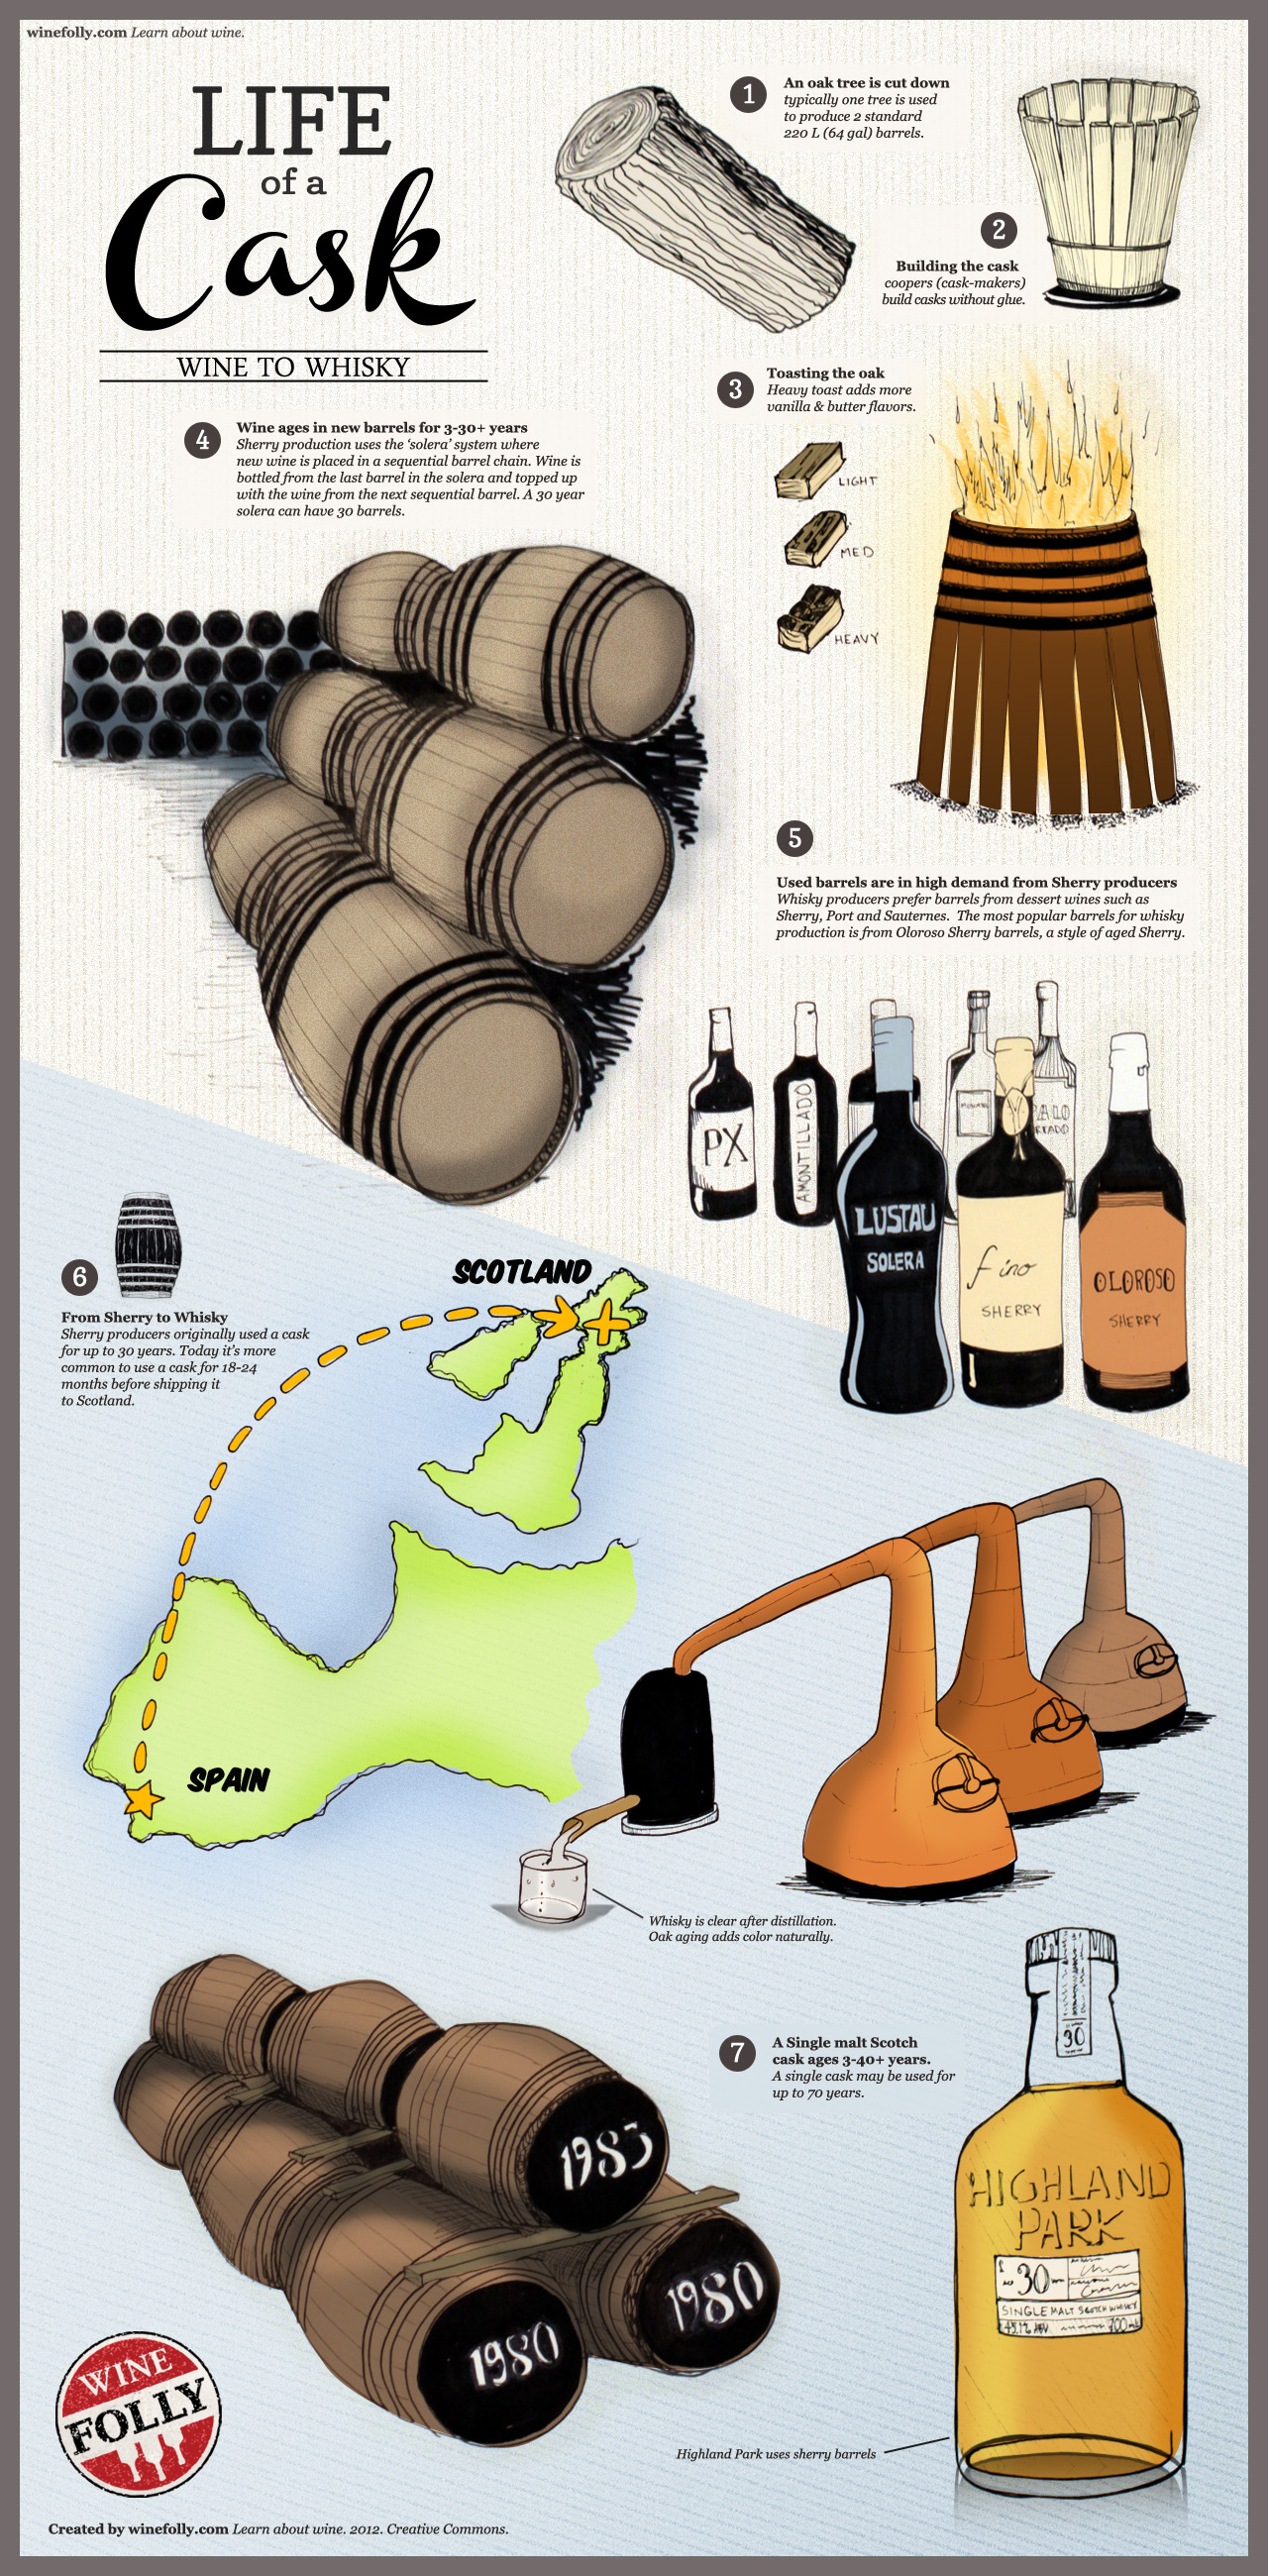 The Life and Times of Whiskey Casks